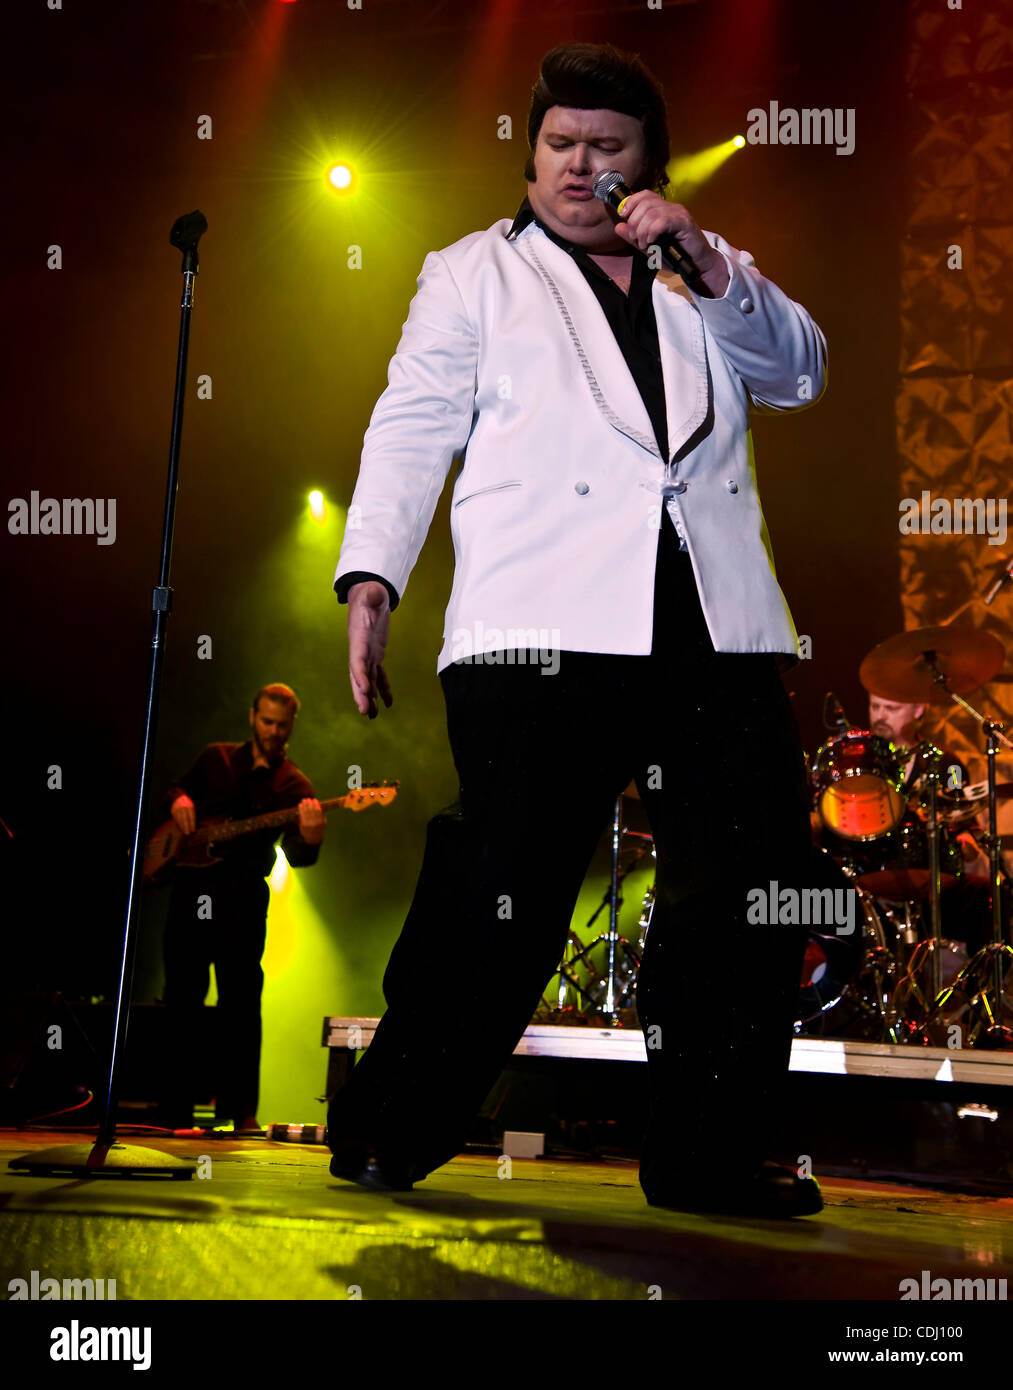 Feb.13, 2011 - Tampa, Florida, USA - RANDY LOVE, from Chicago, Illinois, sings 'Little Sister' at the 2011 - Stock Image